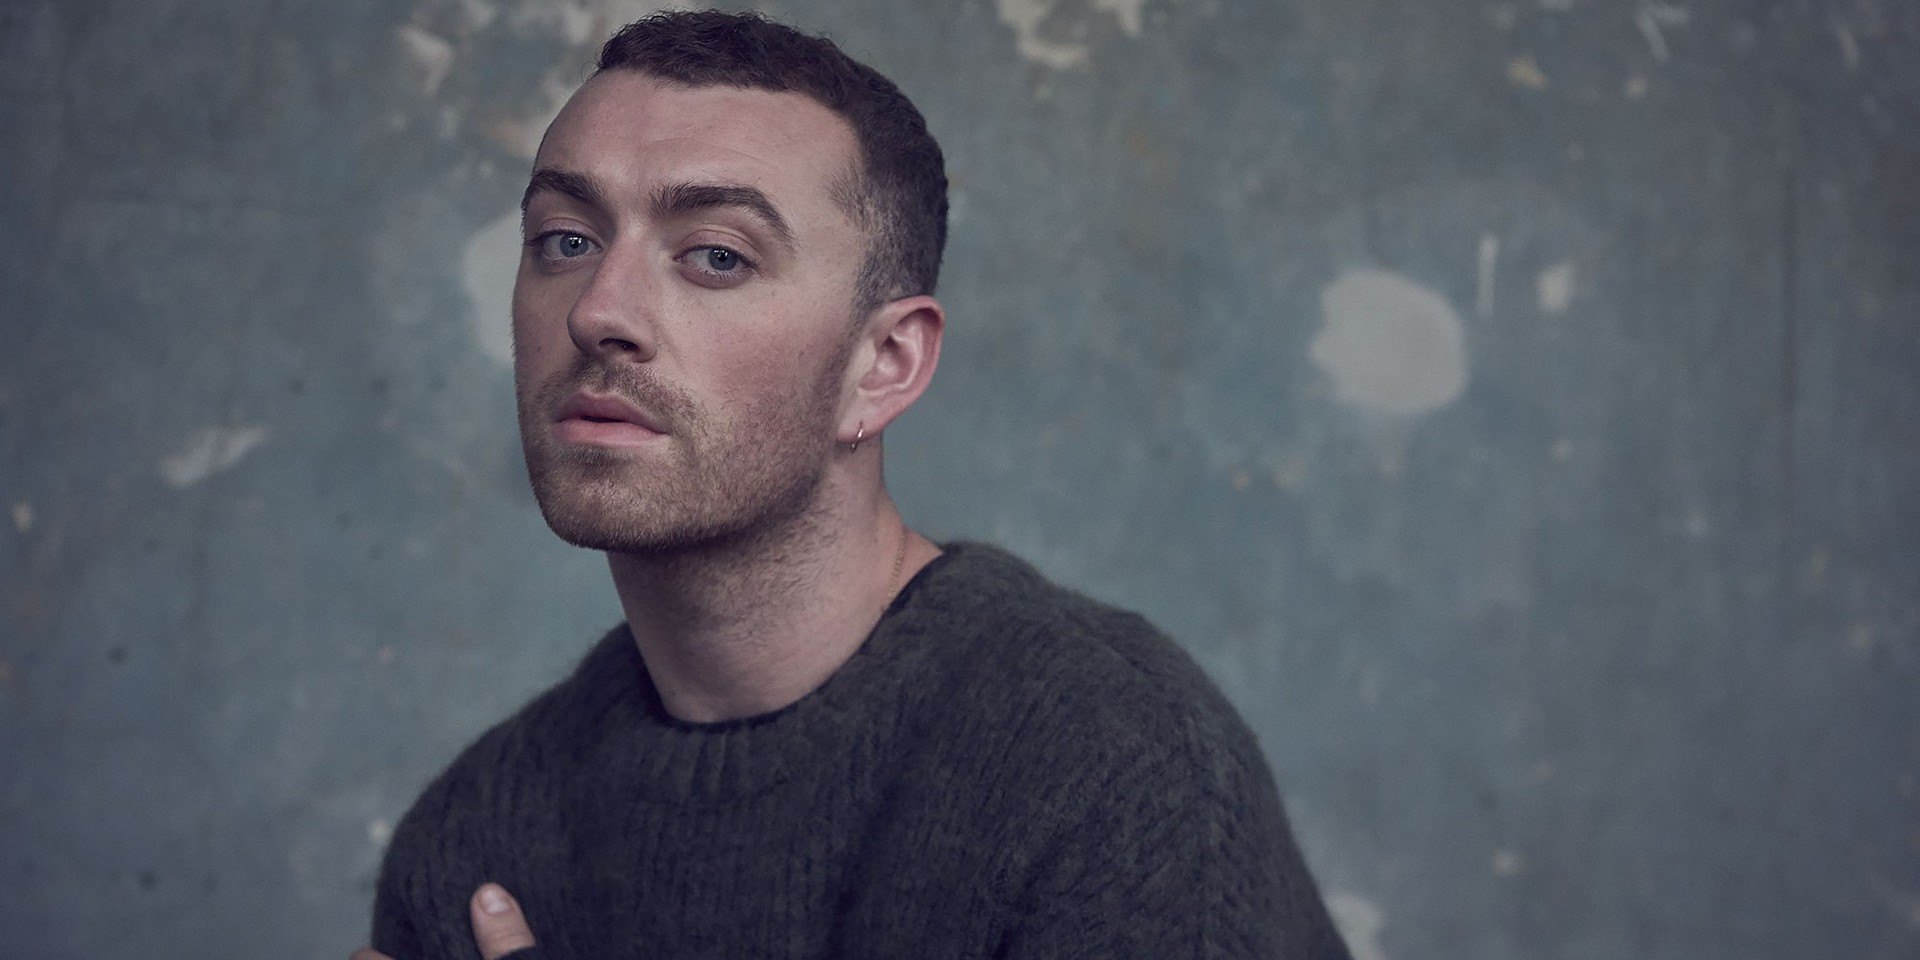 Sam Smith releases new track 'Fire on Fire' – listen